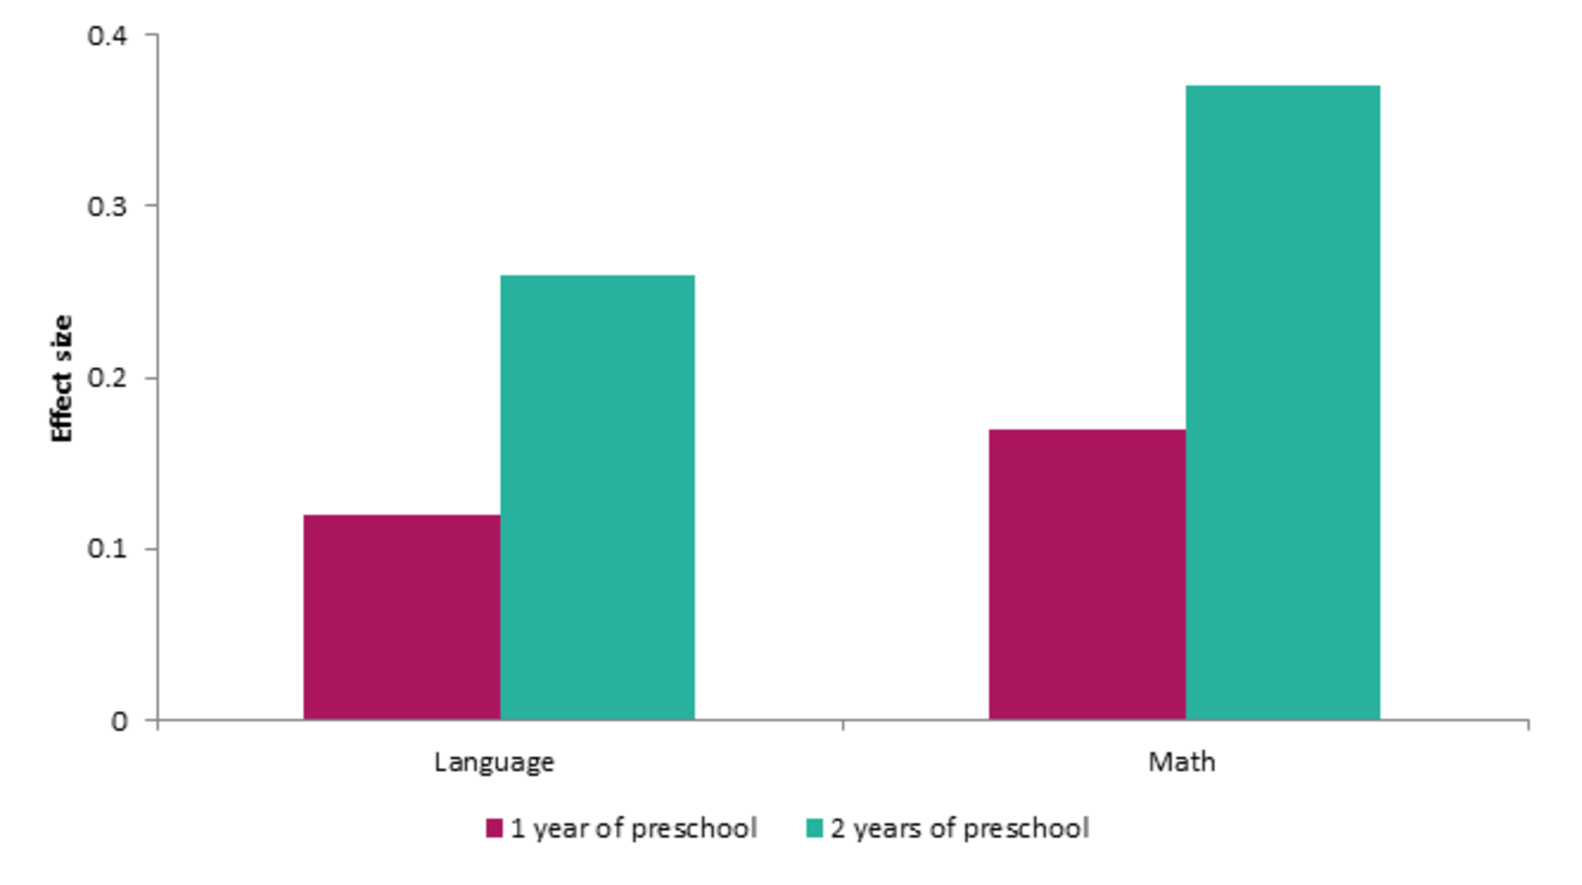 abbott preschool program two years of preschool more impact than one research 458